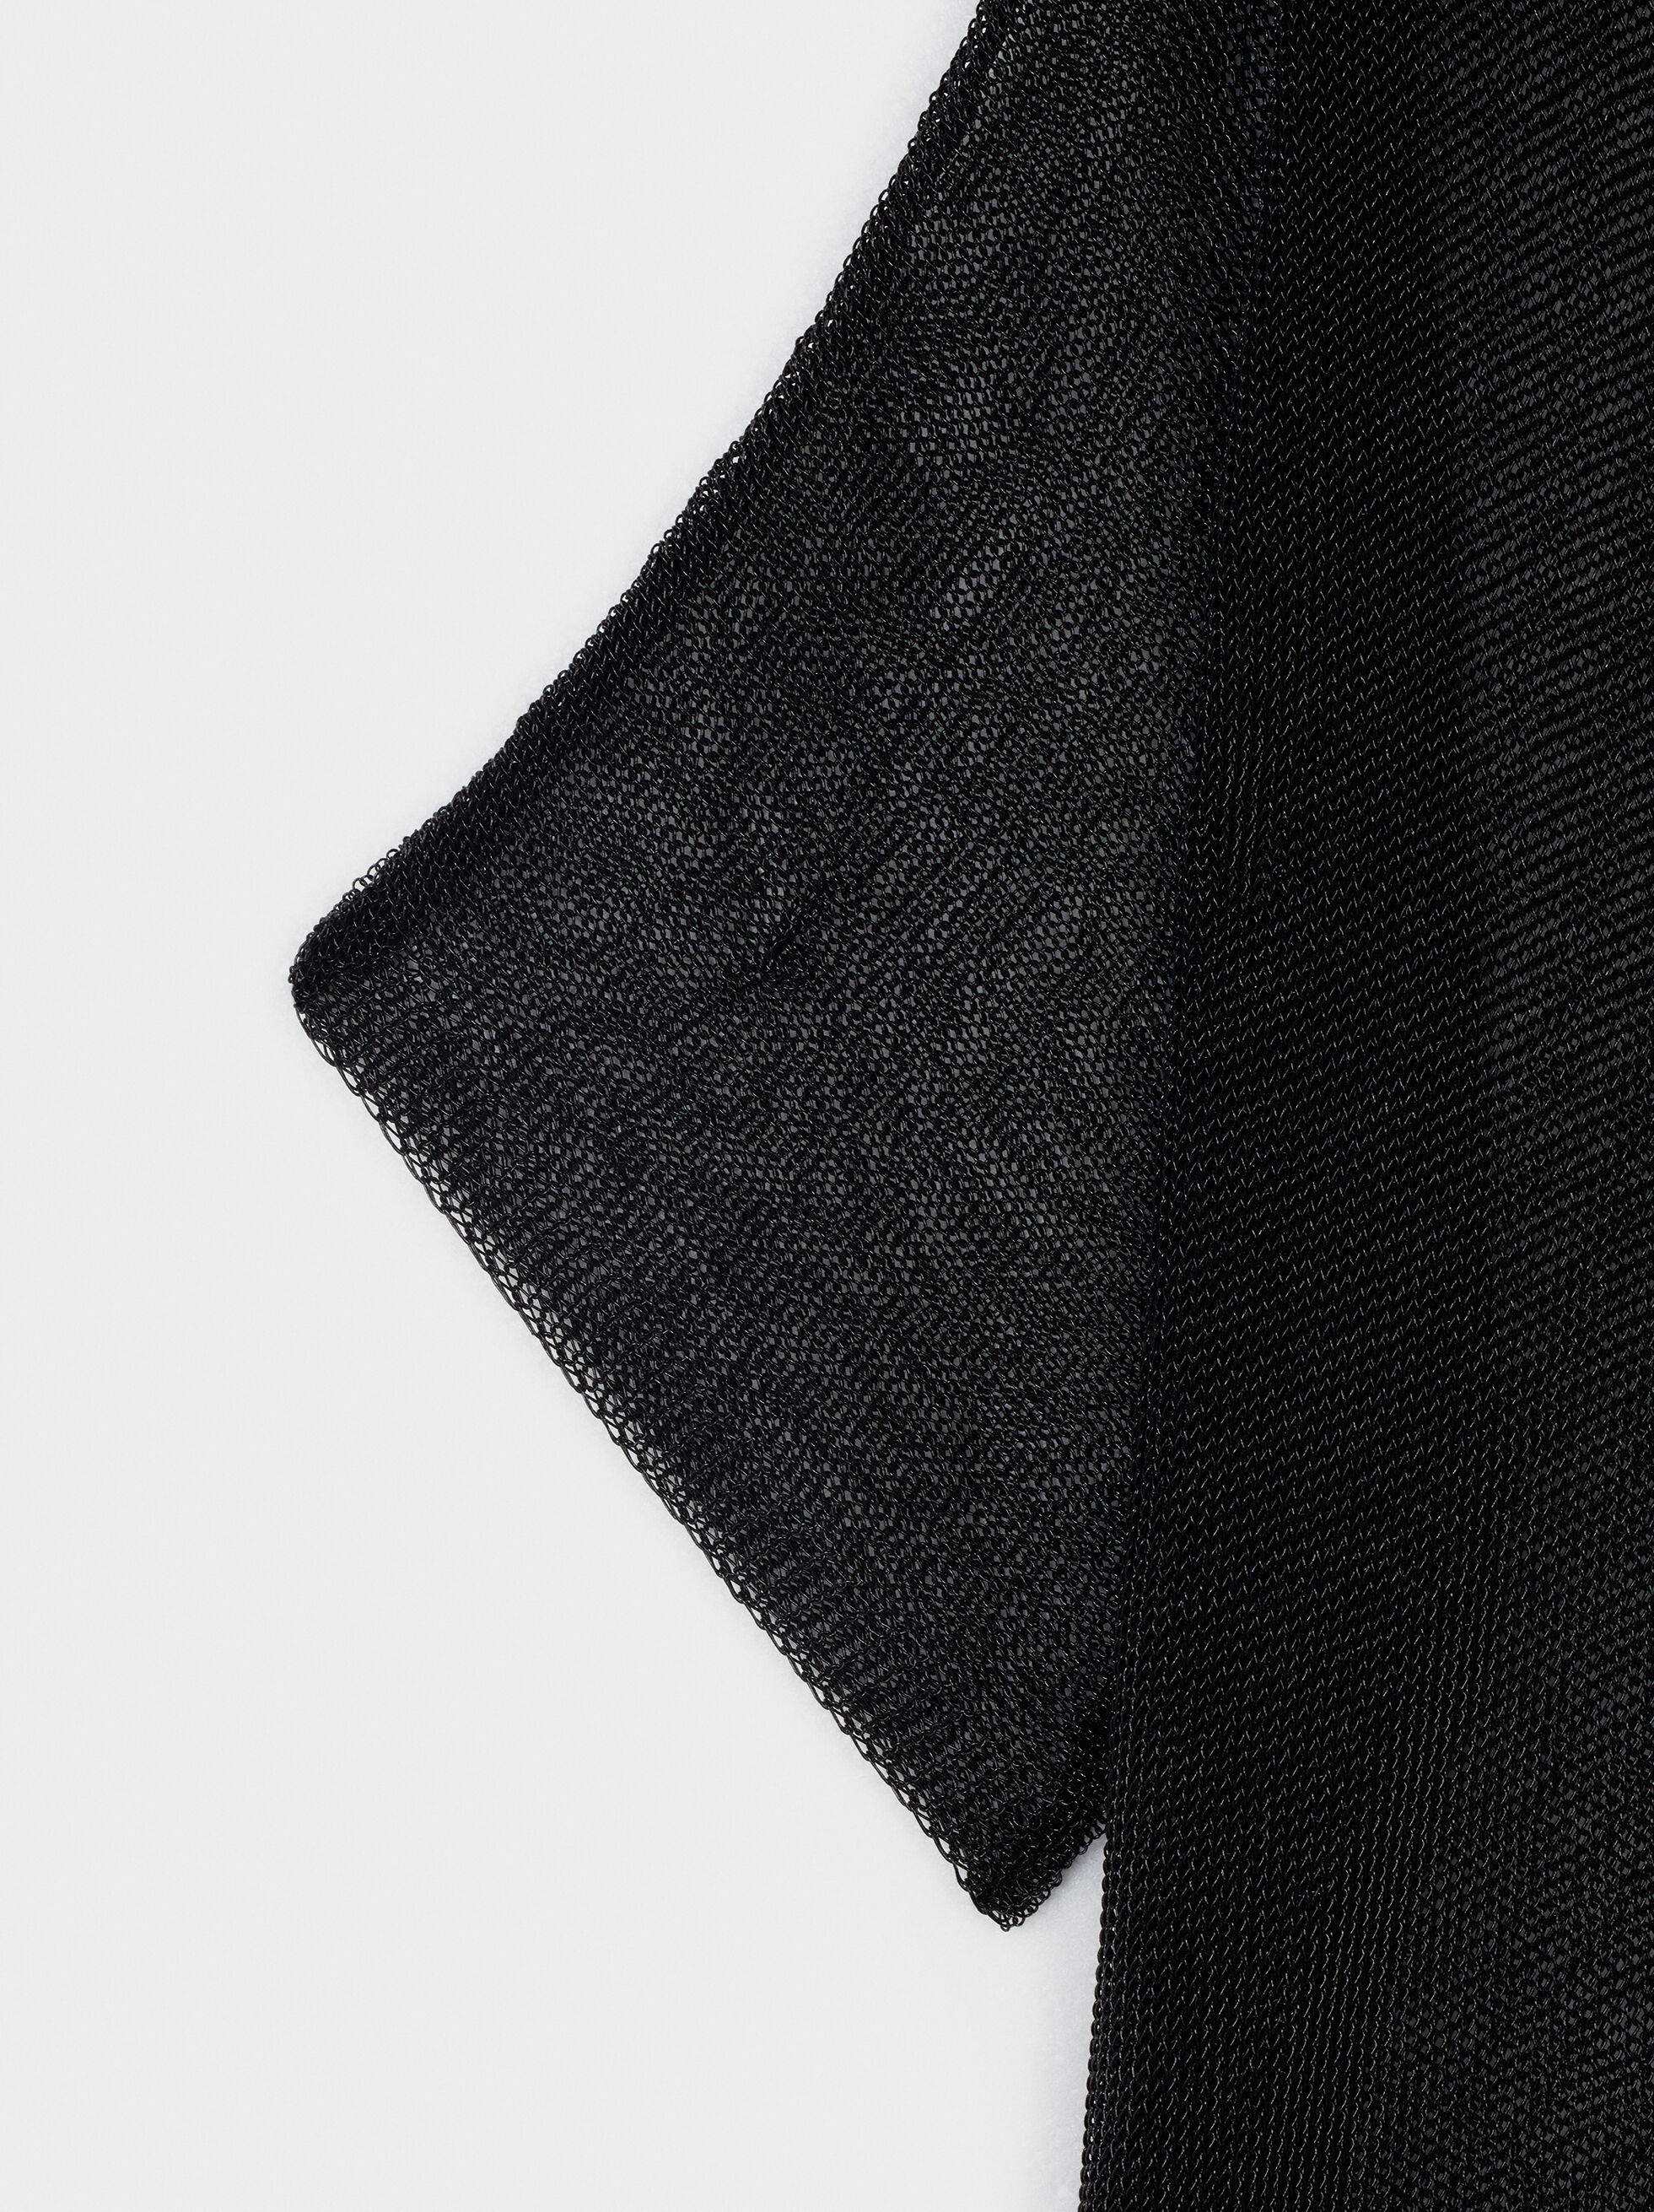 Oversized Knit Sweater, Black, hi-res